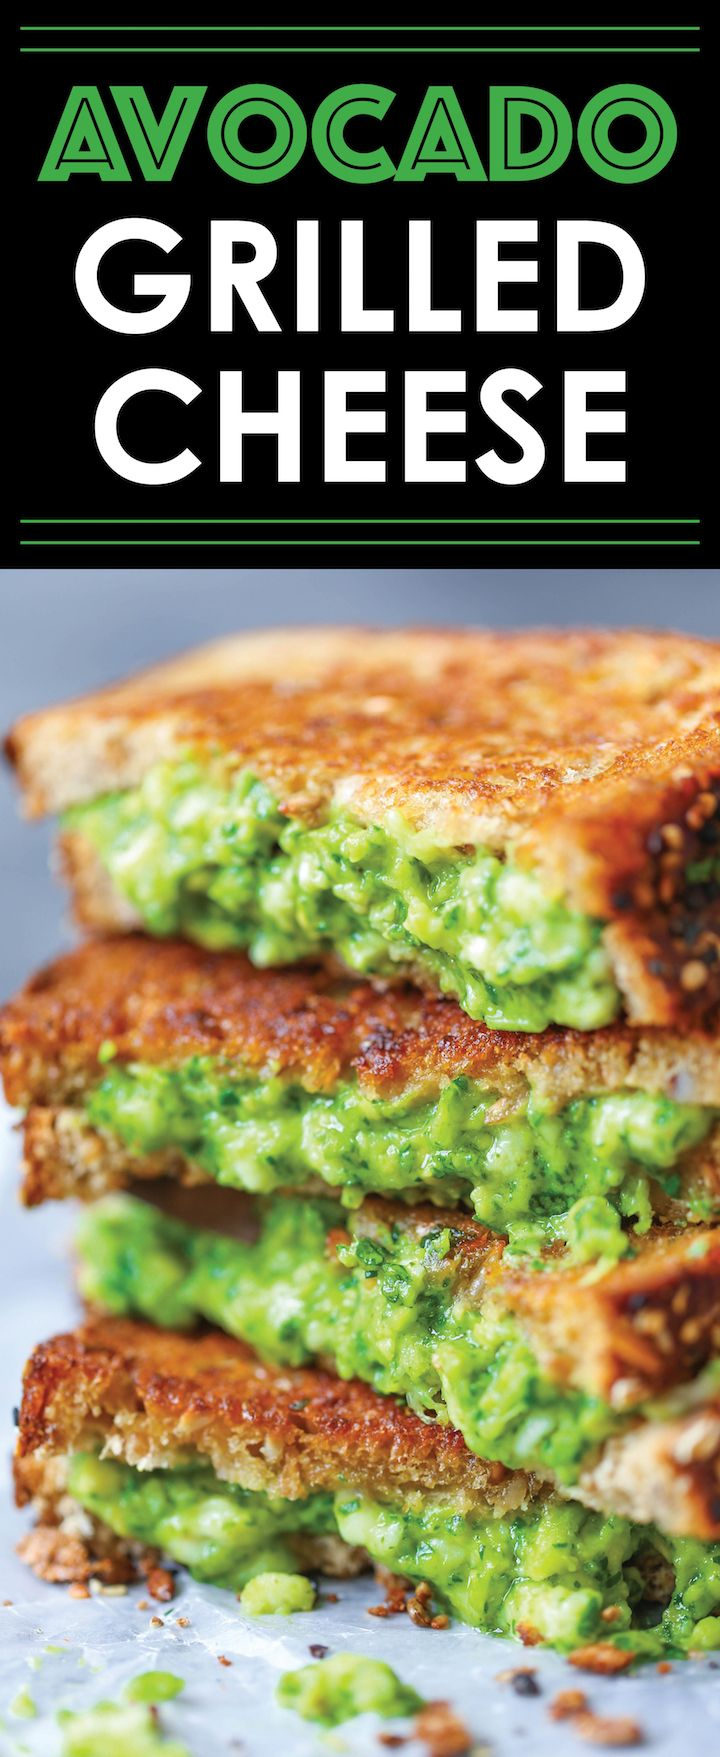 Avocado Grilled Cheese - So buttery and just downright AH-MAZING, oozing with avocado cheesy…